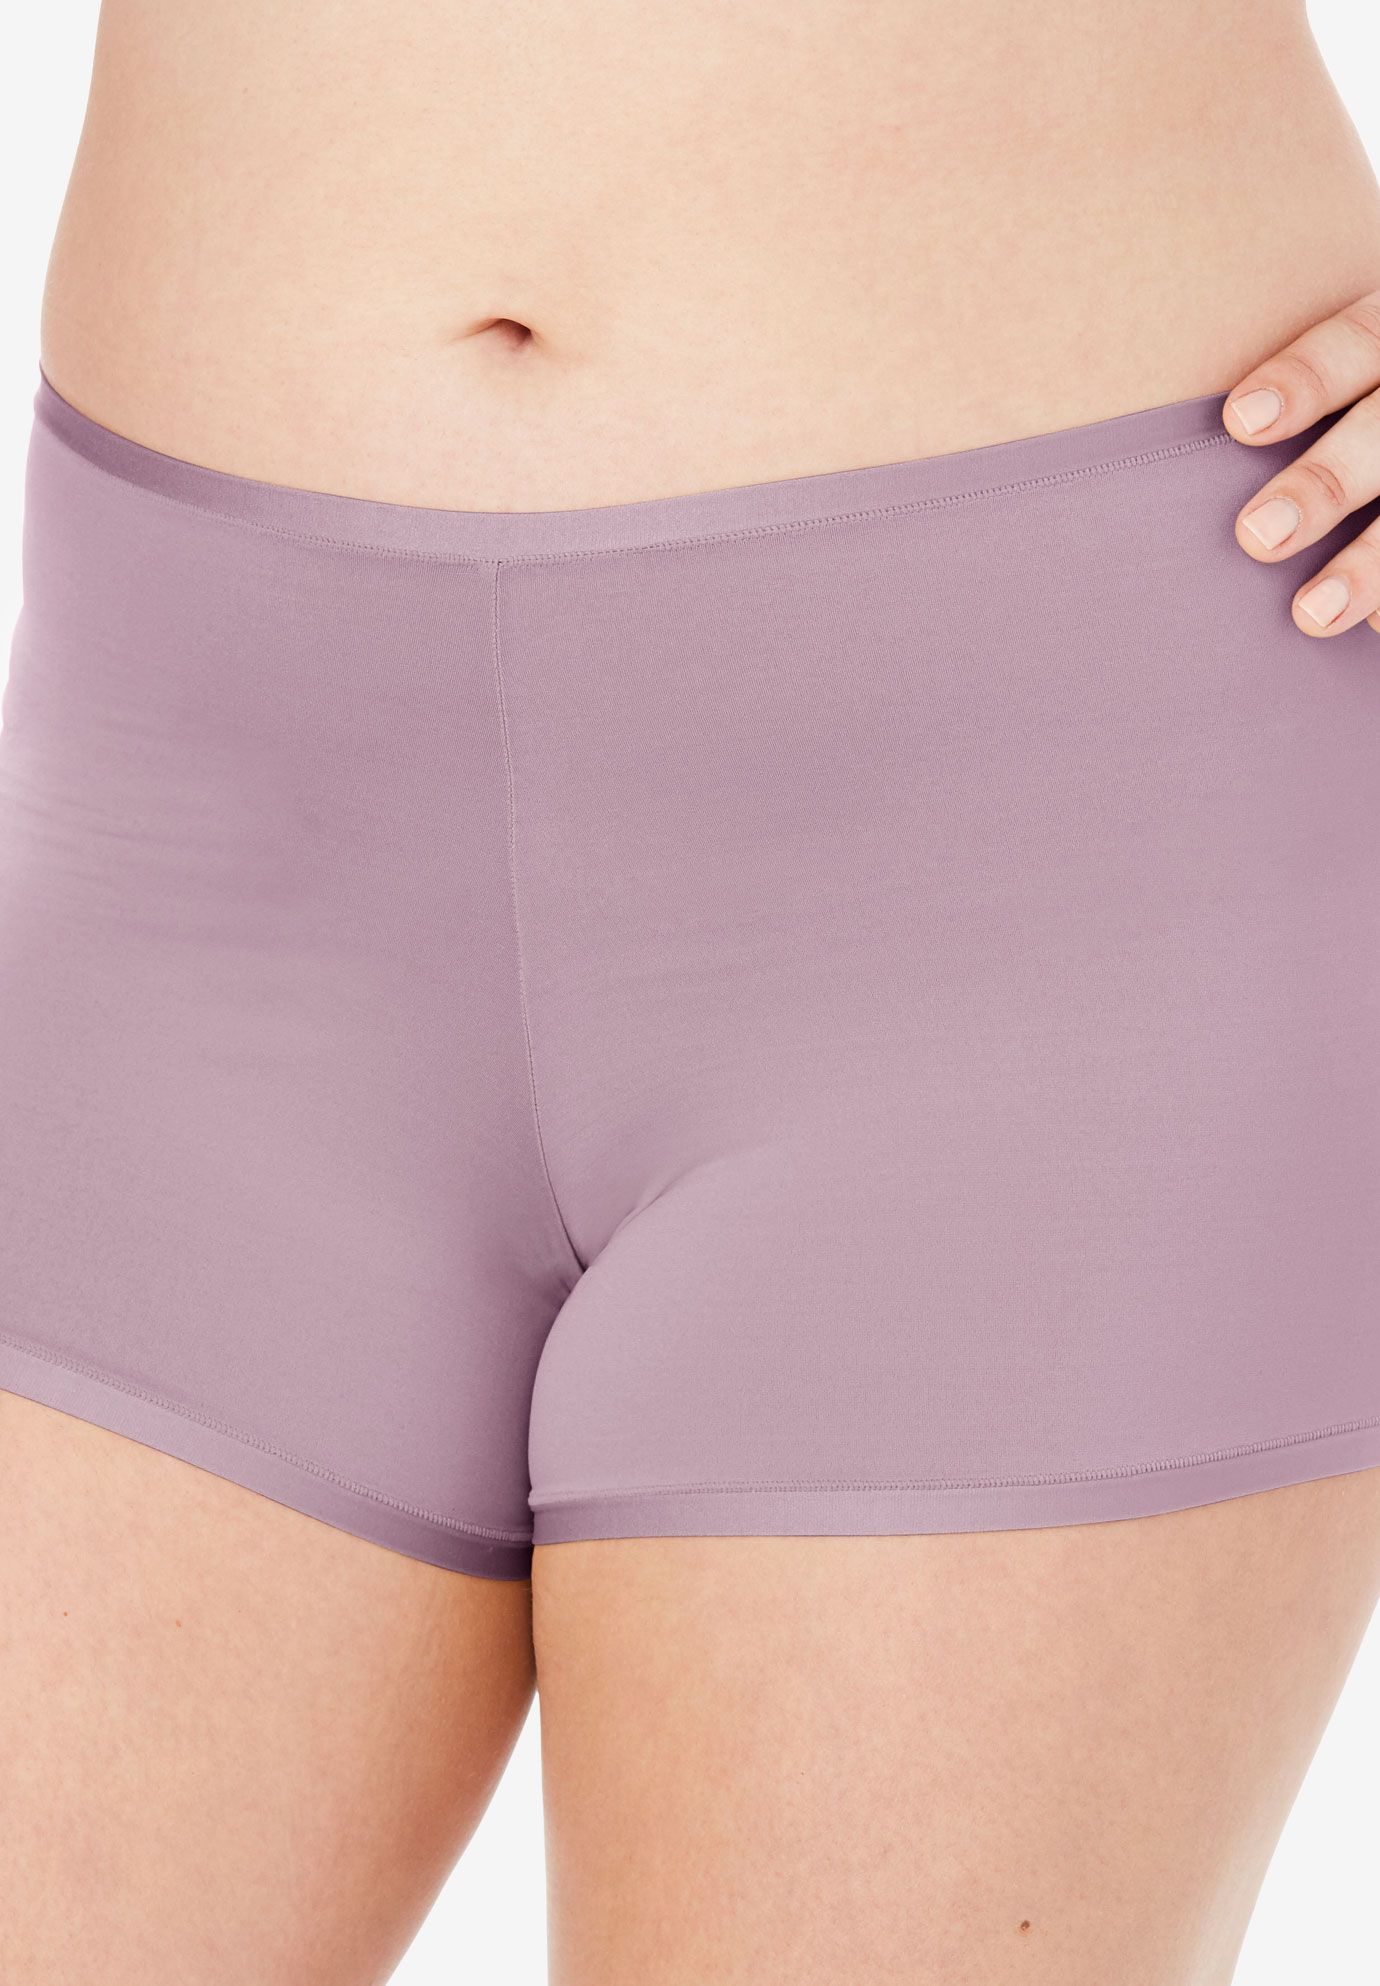 Utra Light Supersoft Boyshort by Comfort Choice®,